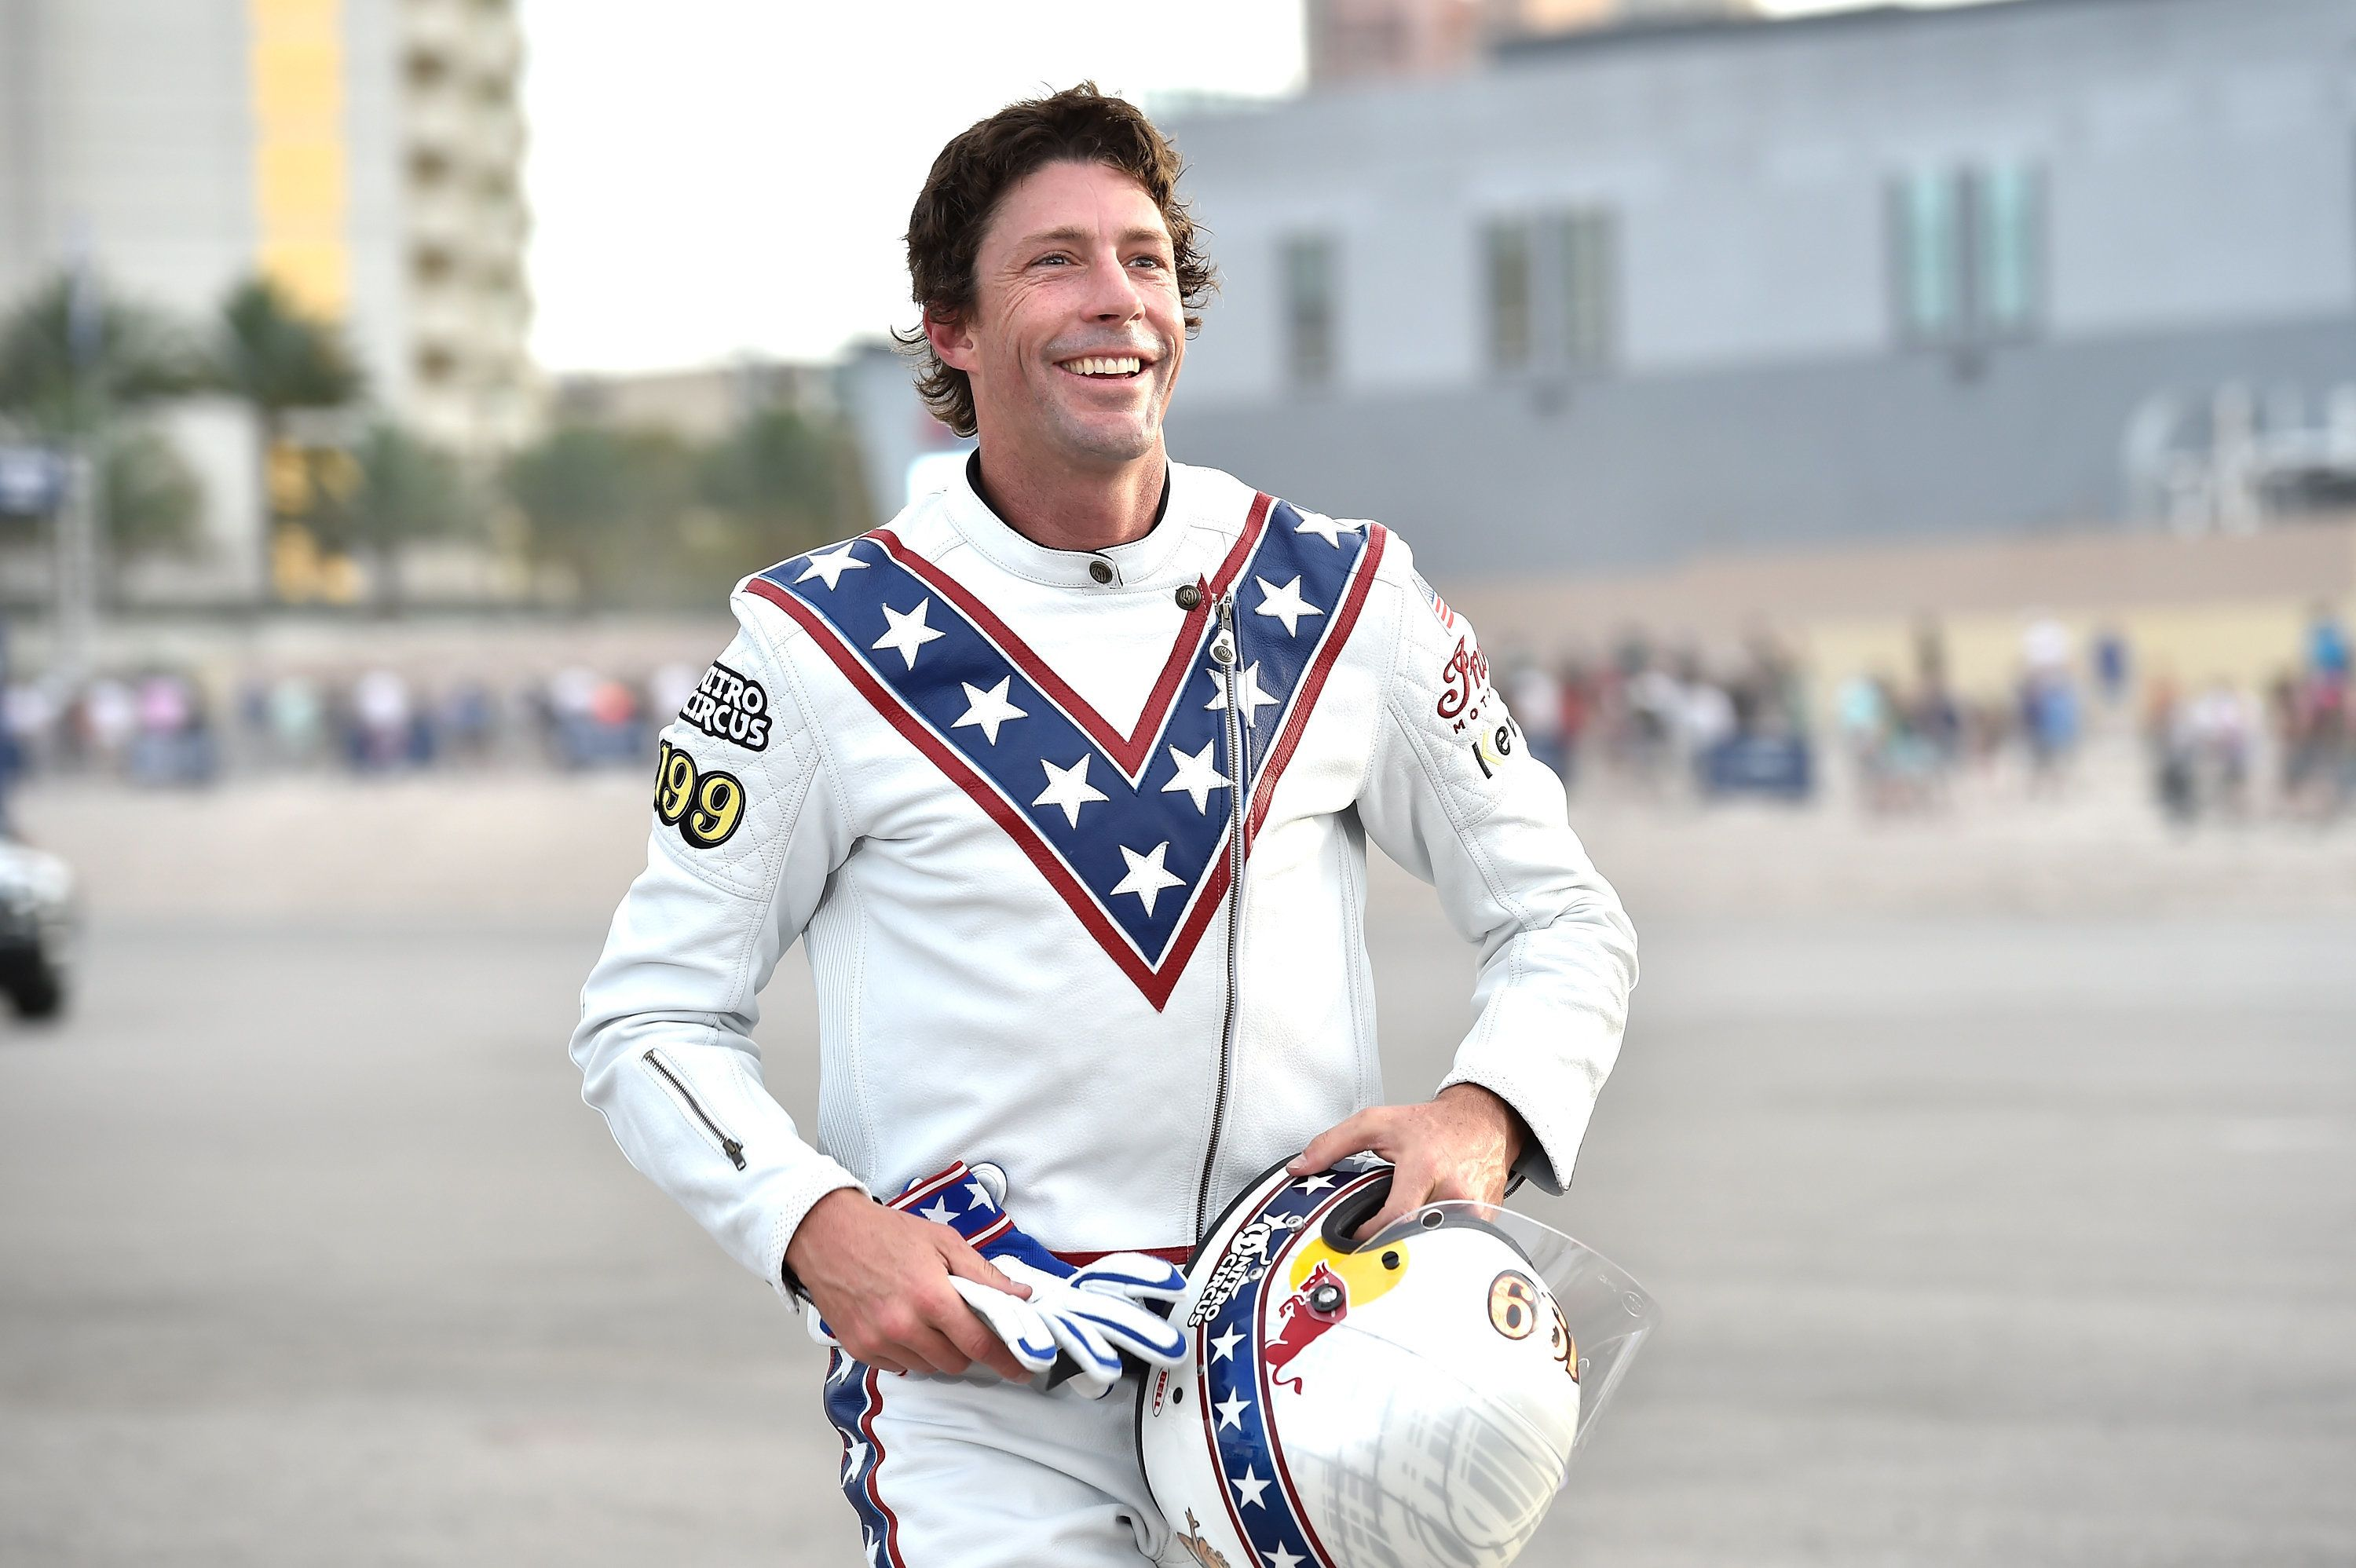 LAS VEGAS, NV - JULY 08:  Travis Pastrana peforms during HISTORY's Live Event 'Evel Live' on July 8, 2018 in Las Vegas, Nevada.  (Photo by David Becker/Getty Images for HISTORY)